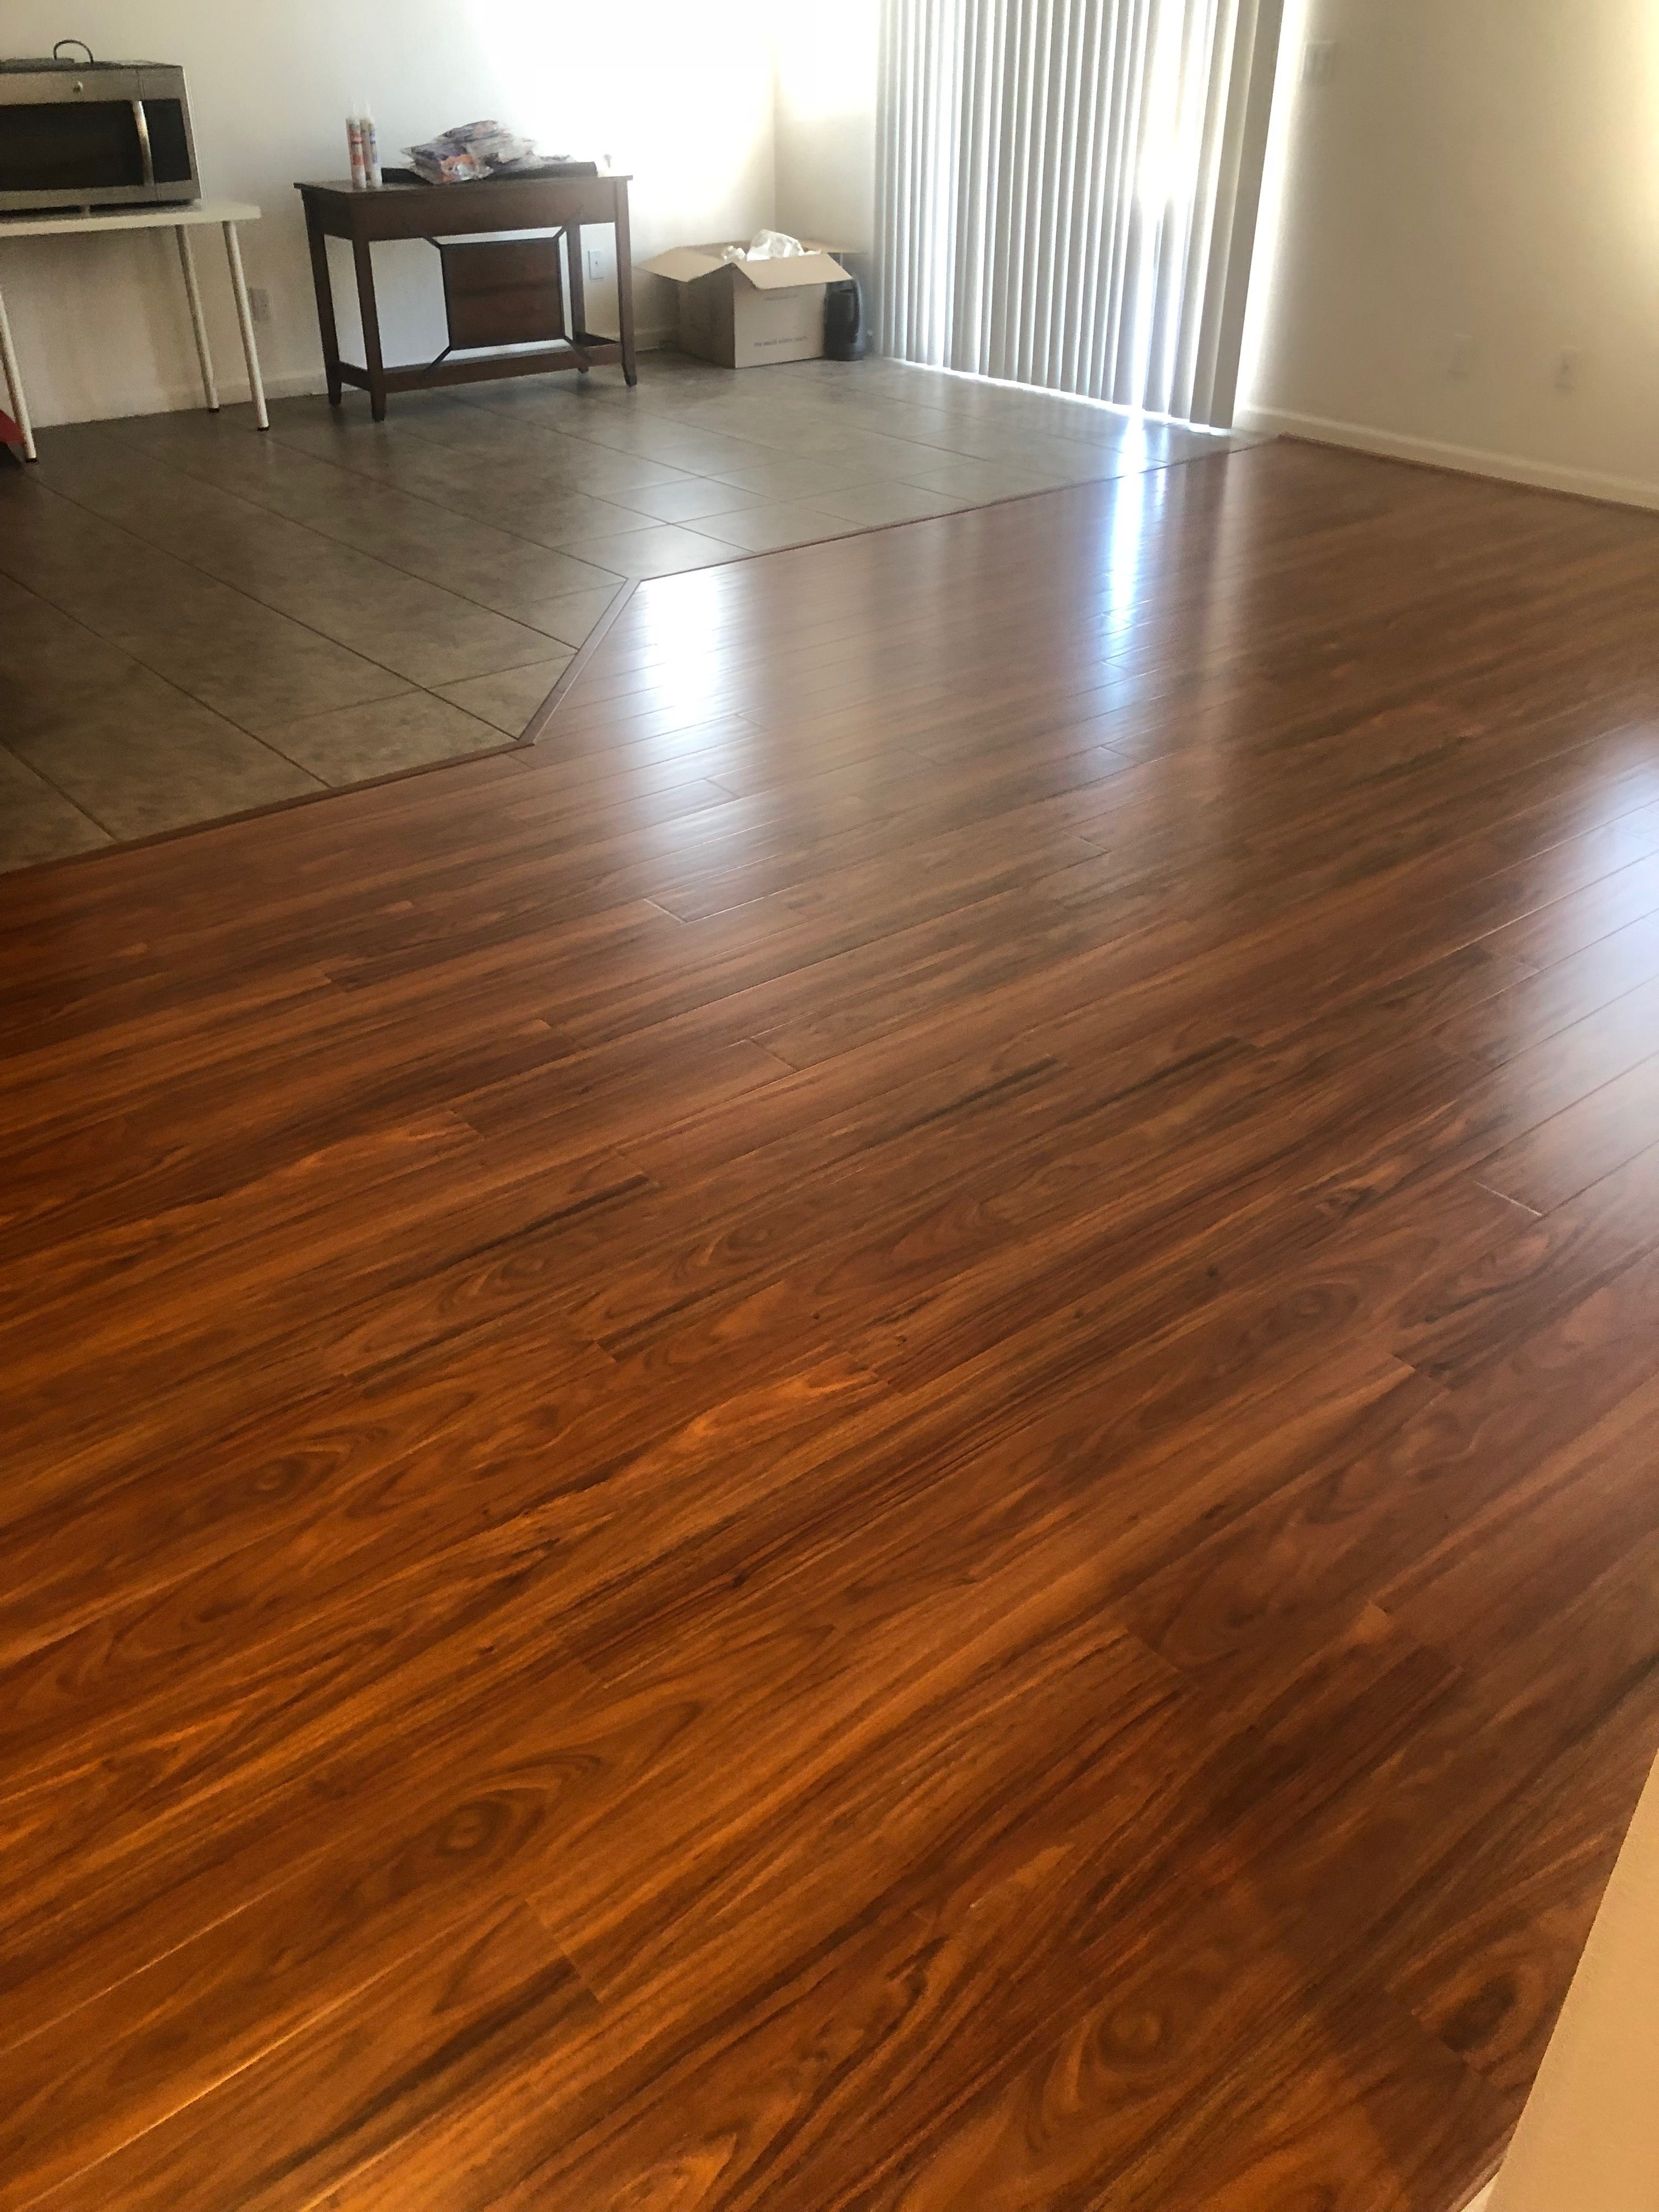 Engineered hardwood floor inmstall